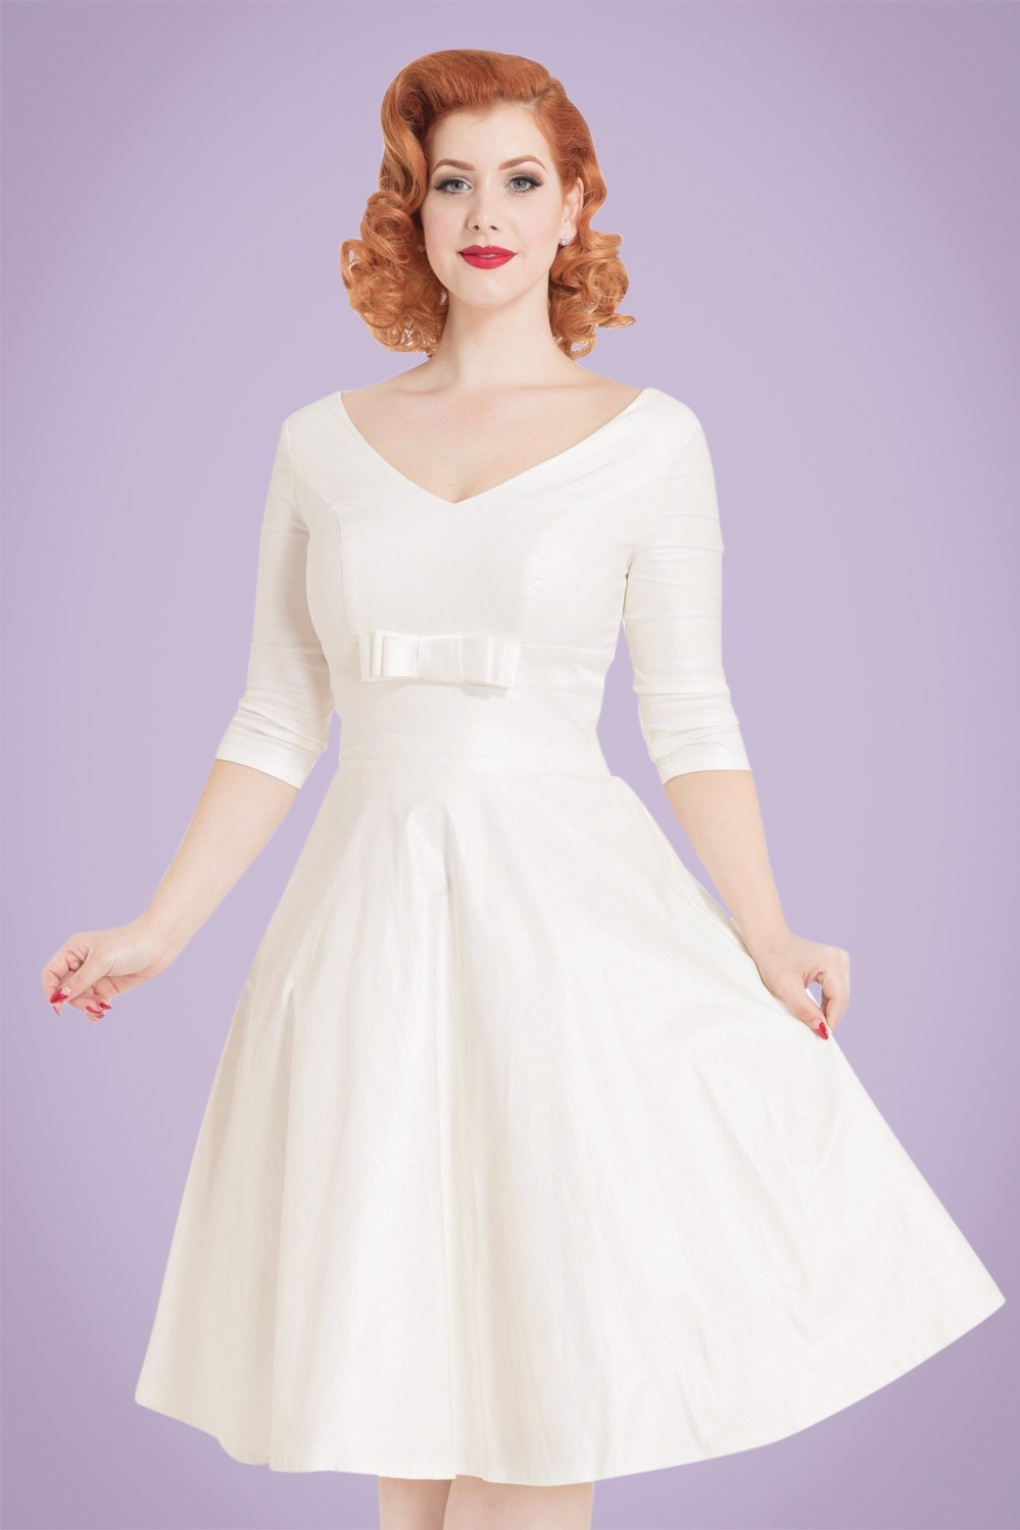 1950s Prom Dresses, Formal Dresses and Party Dresses 50s Dorothy Bridal Swing Dress in Ivory £127.50 AT vintagedancer.com